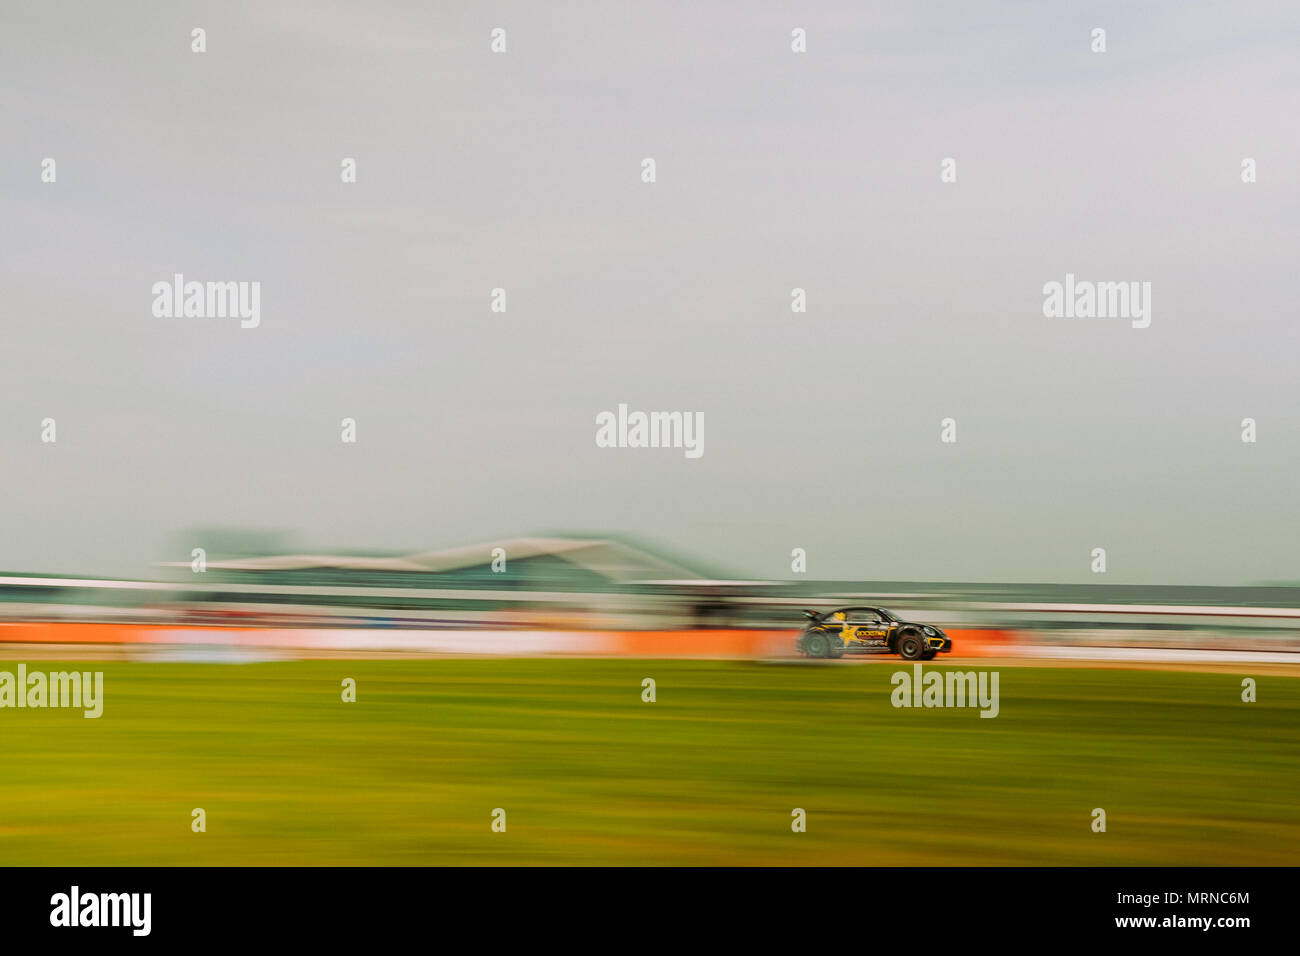 Towcester, Northamptonshire, UK. 27th May, 2018. FIA World Rallycross driver Tanner Foust drives during the Cooper Tires World RX of Great Britain at Silverstone (Photo by Gergo Toth / Alamy Live News) Stock Photo